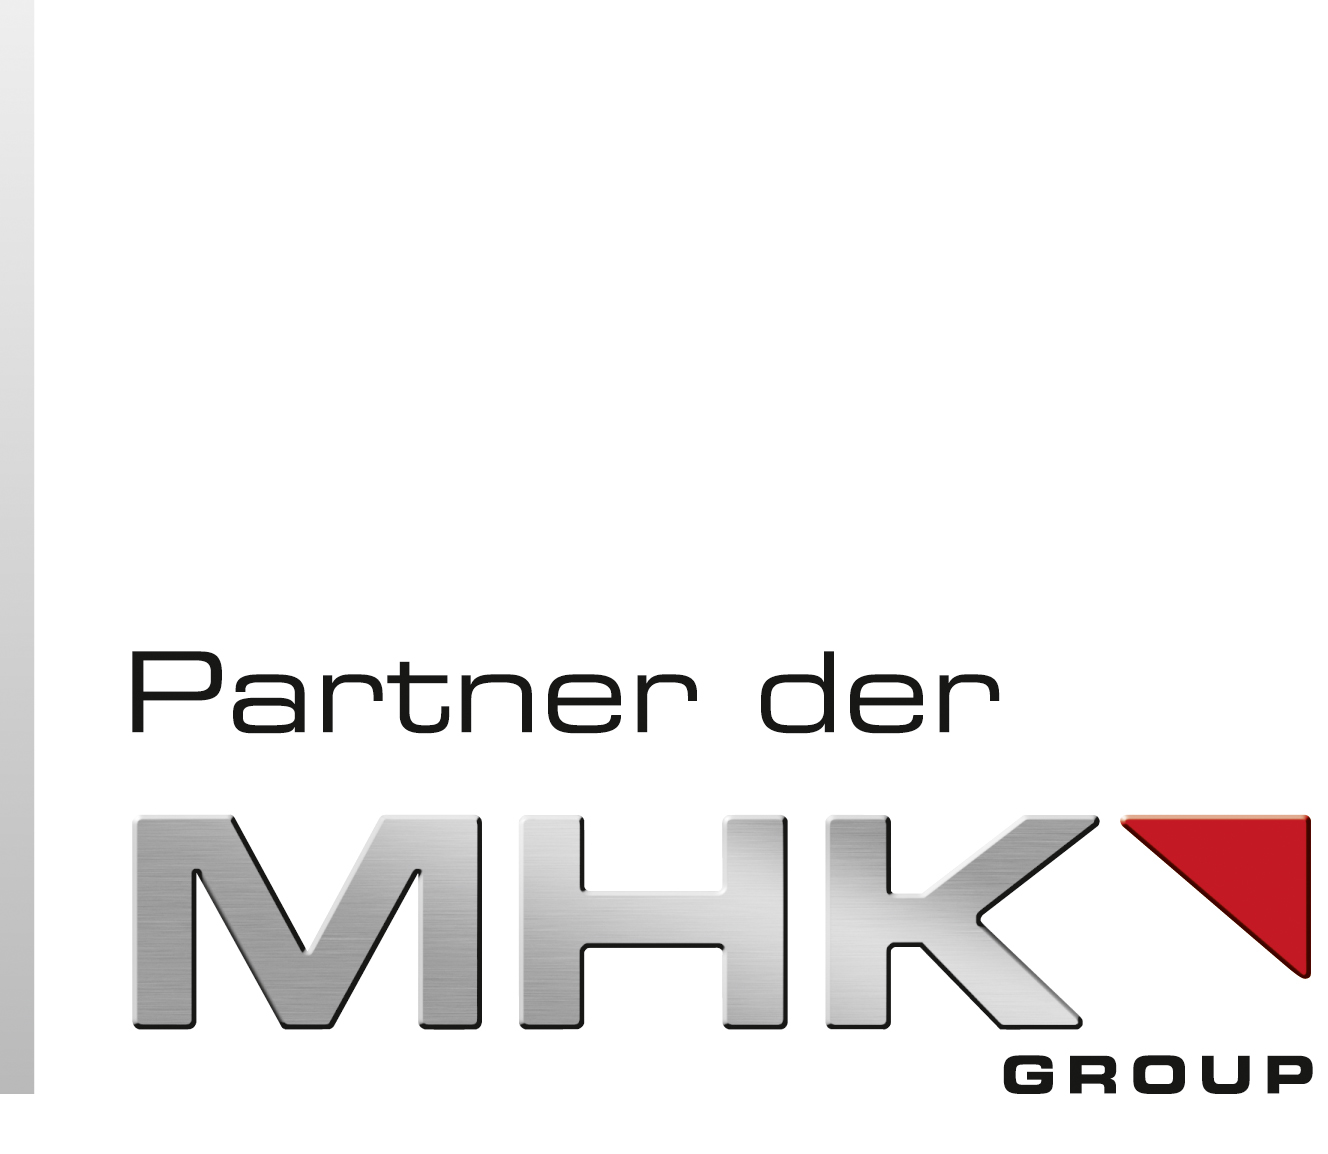 MHK Group